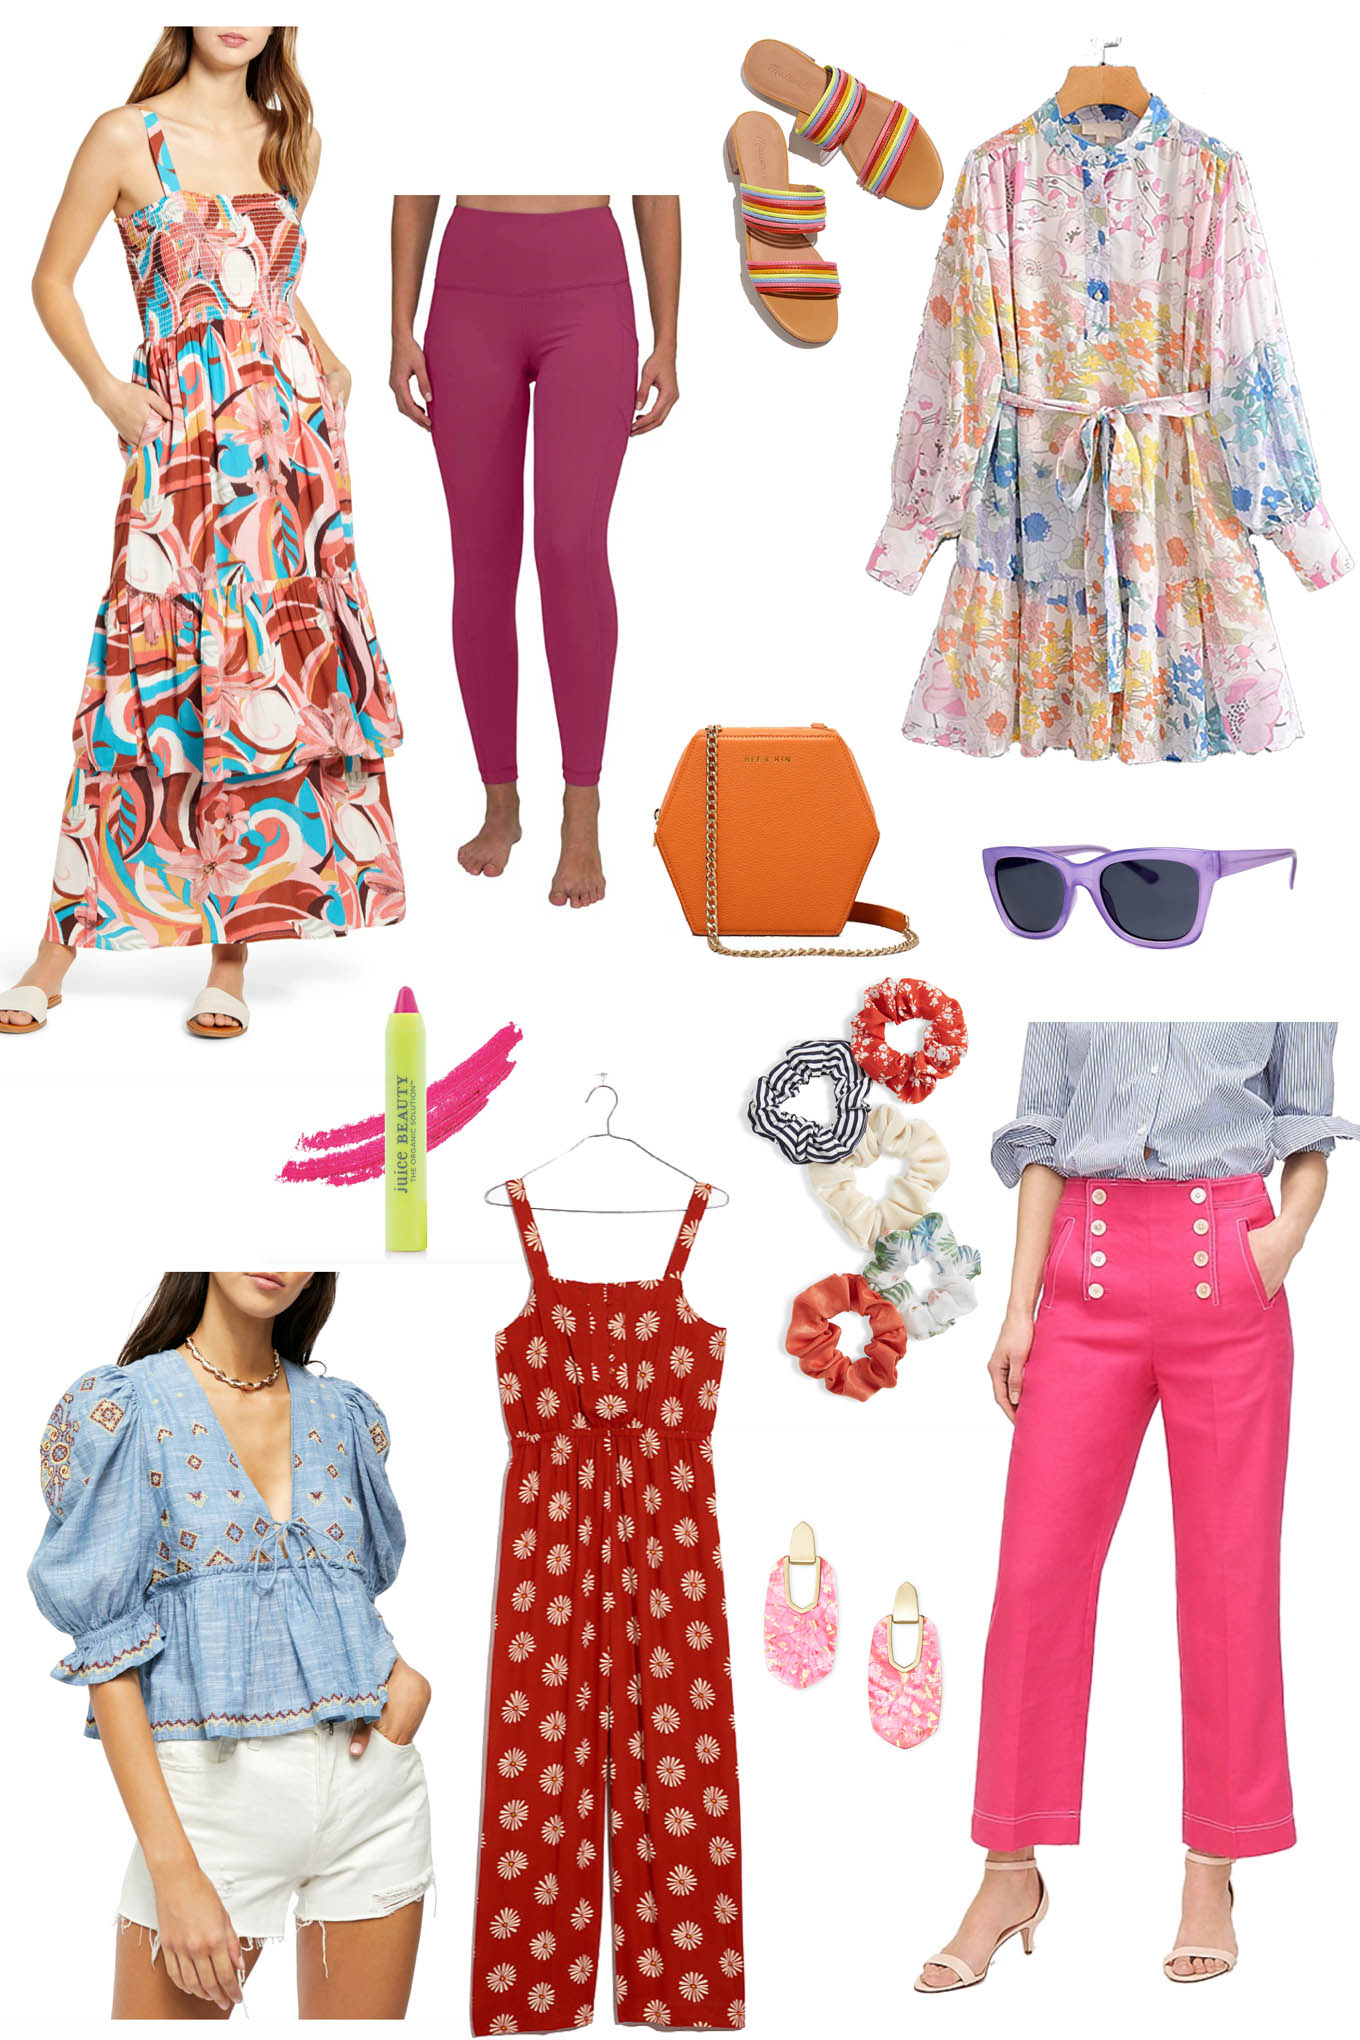 Colorful Spring Outfits by popular Chicago fashion blog, Glass of Glam: collage image of a red jumpsuit, sunglasses, orange purse, pink jeans, sandals, pink earrings, and multi color maxi dress.